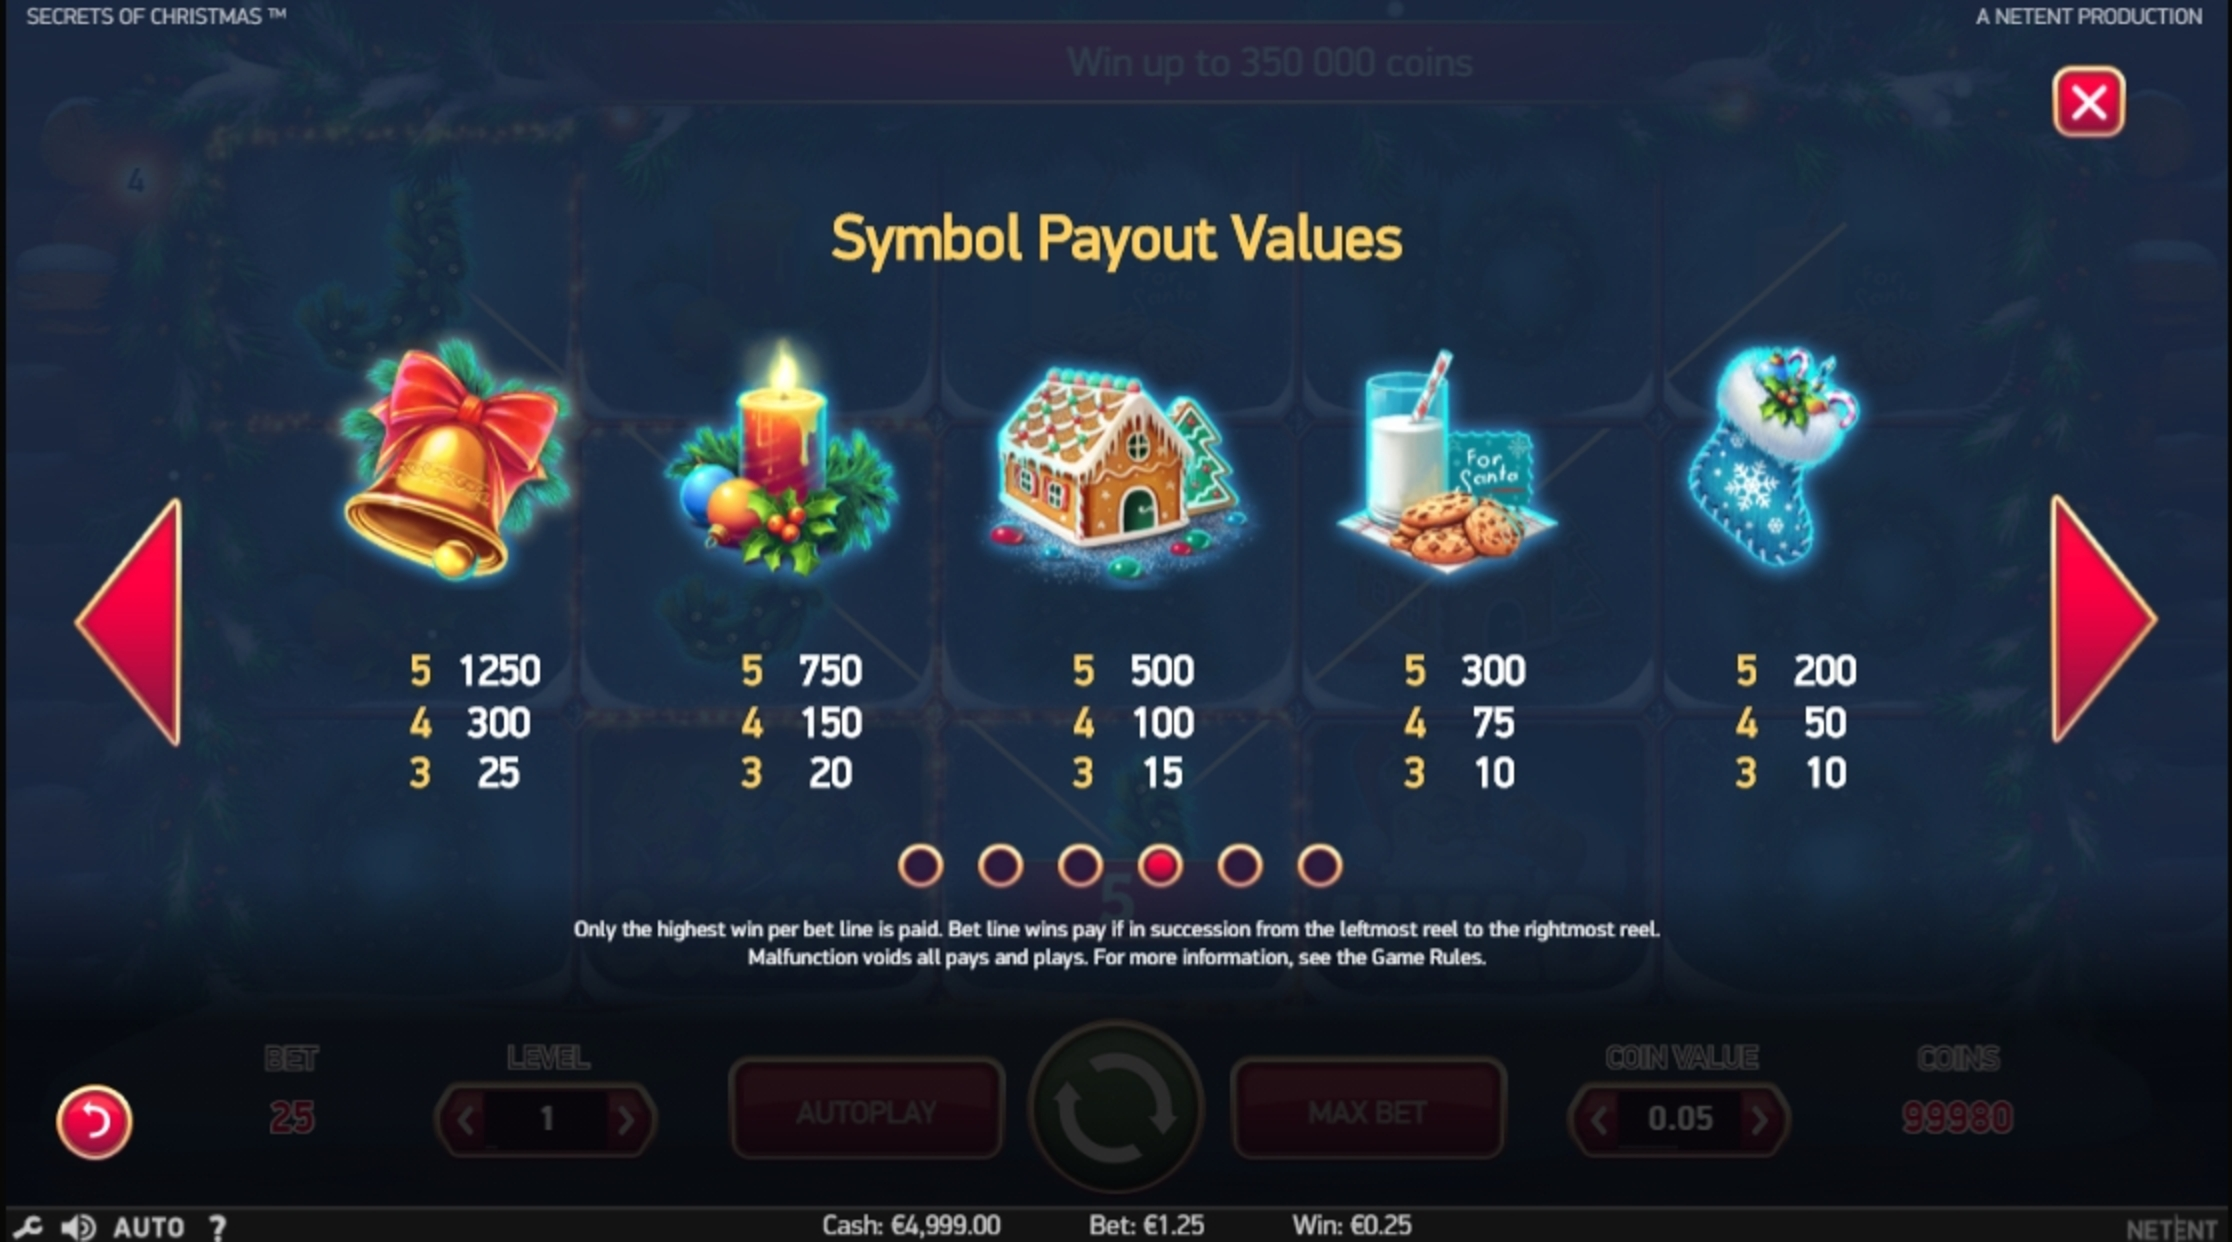 Info of Secrets of Christmas Slot Game by NetEnt